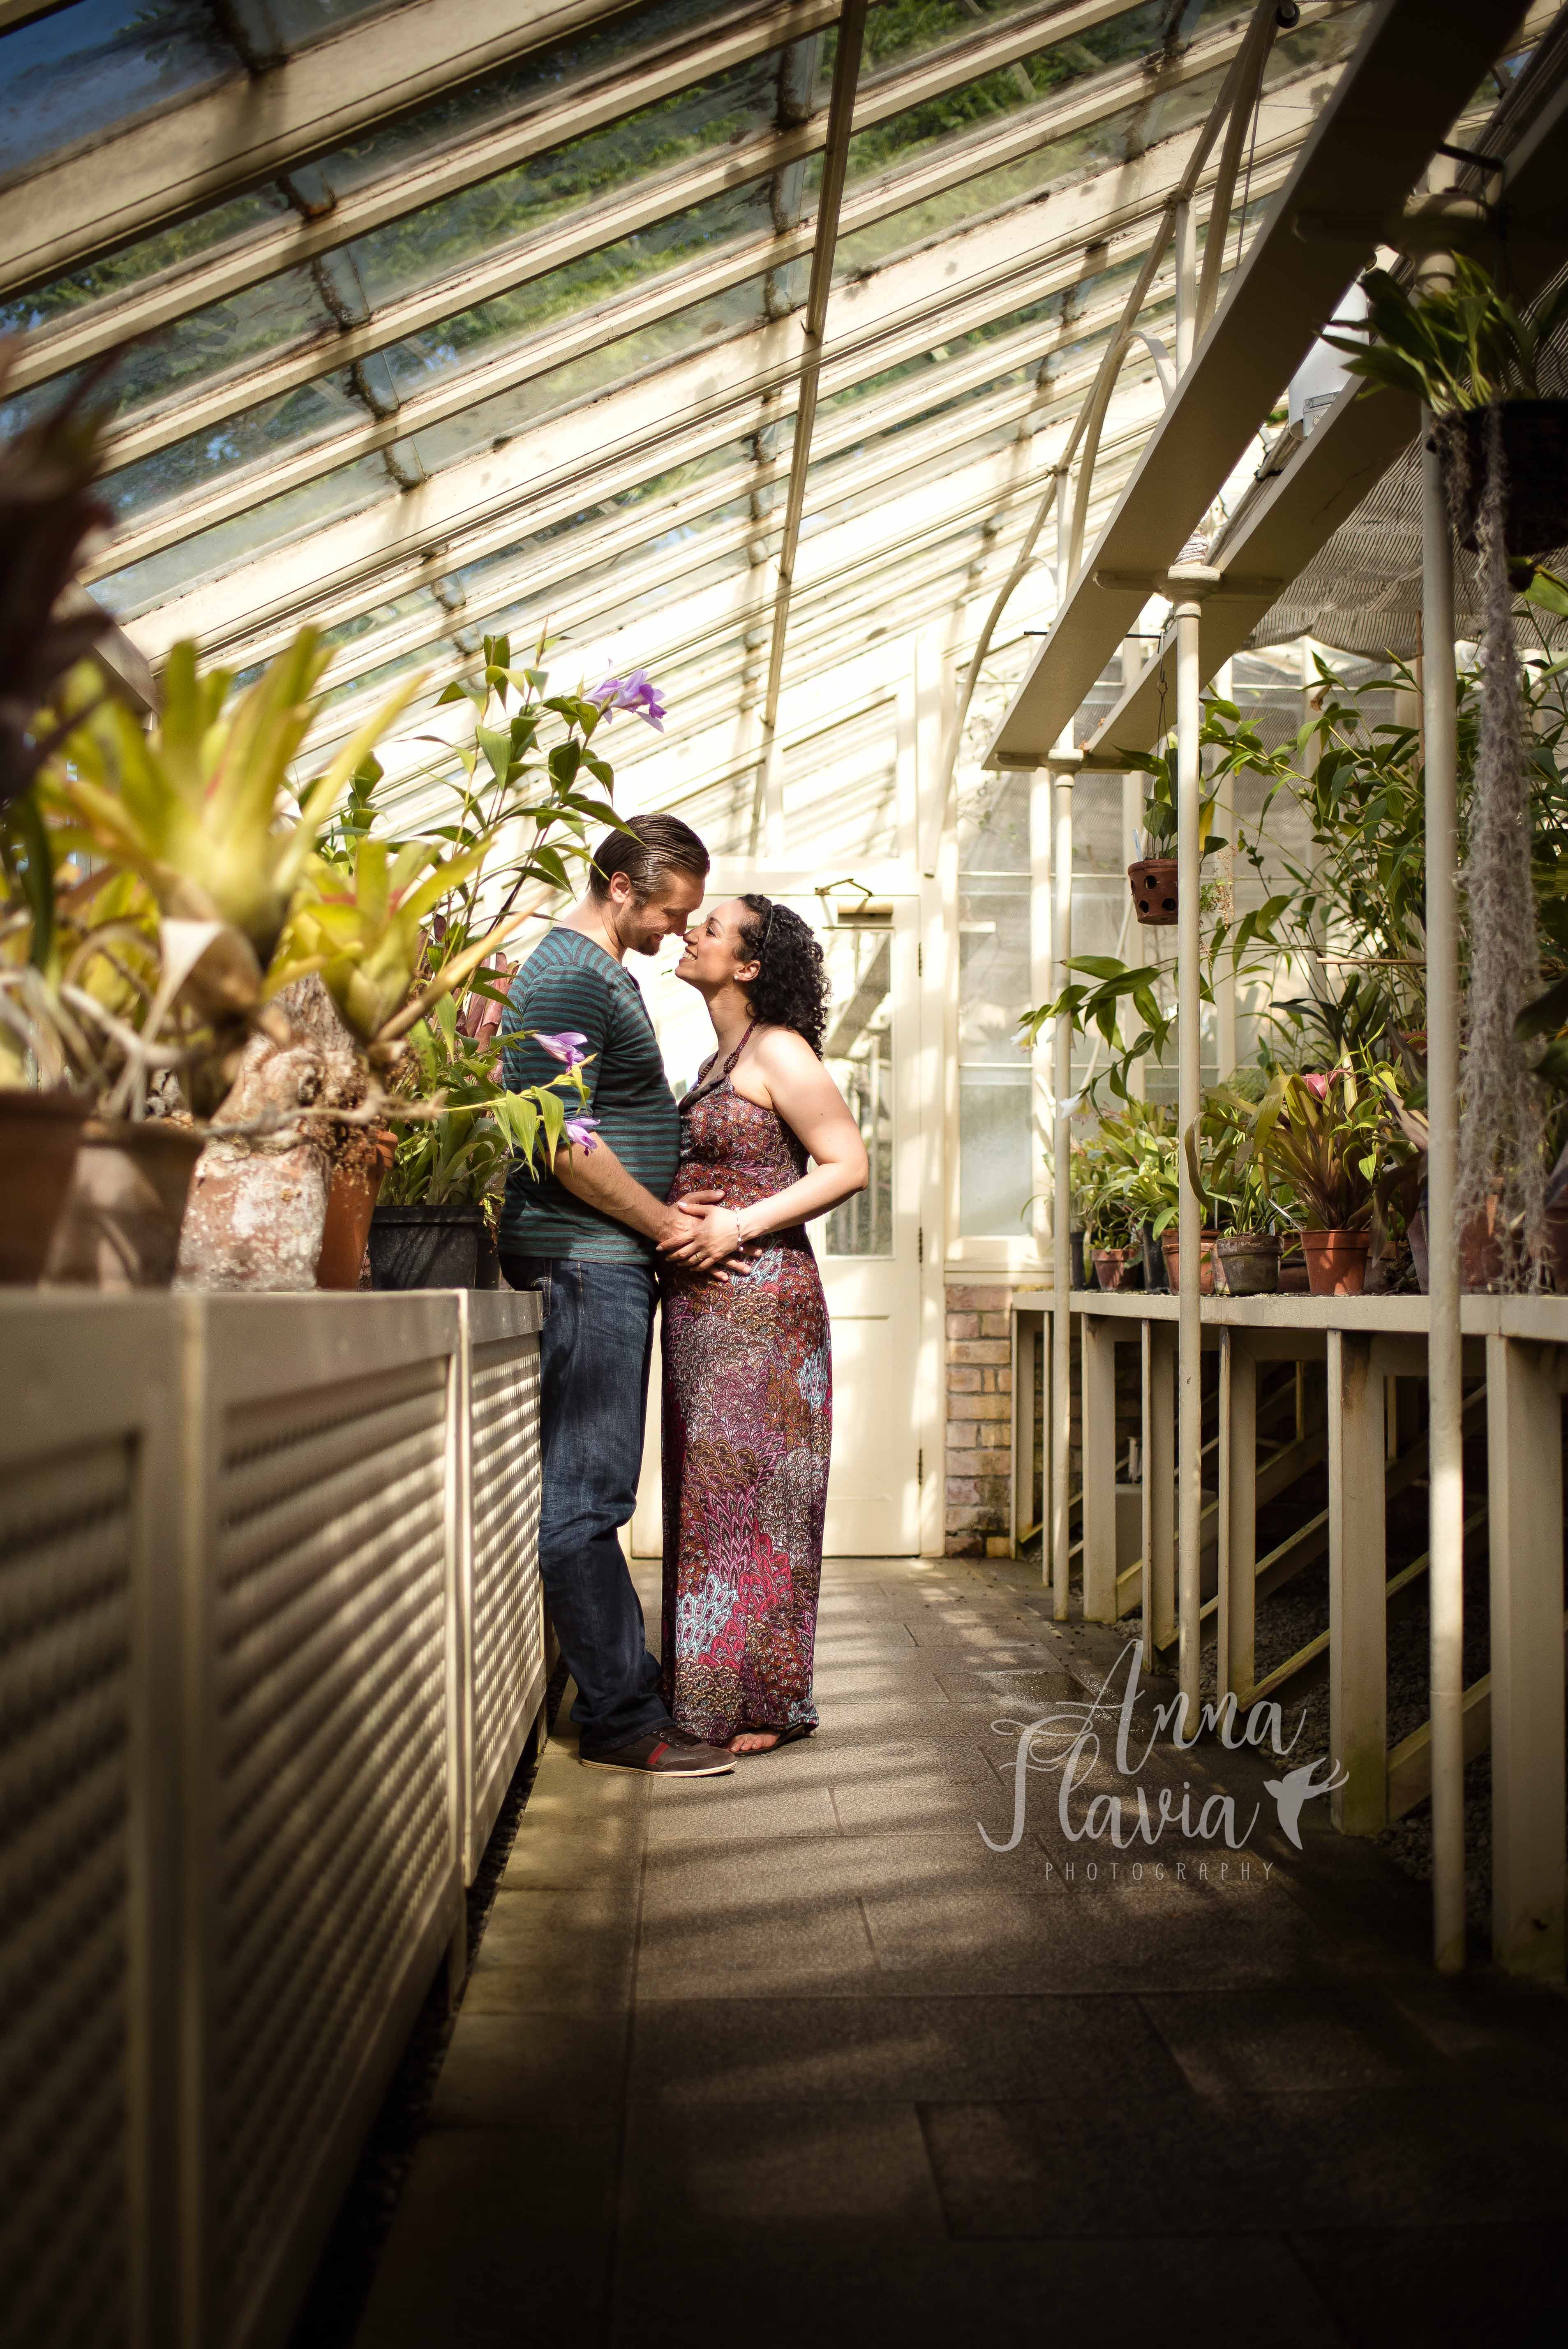 photographer_dublin_anna_flavia_maternity_newborn_family_12